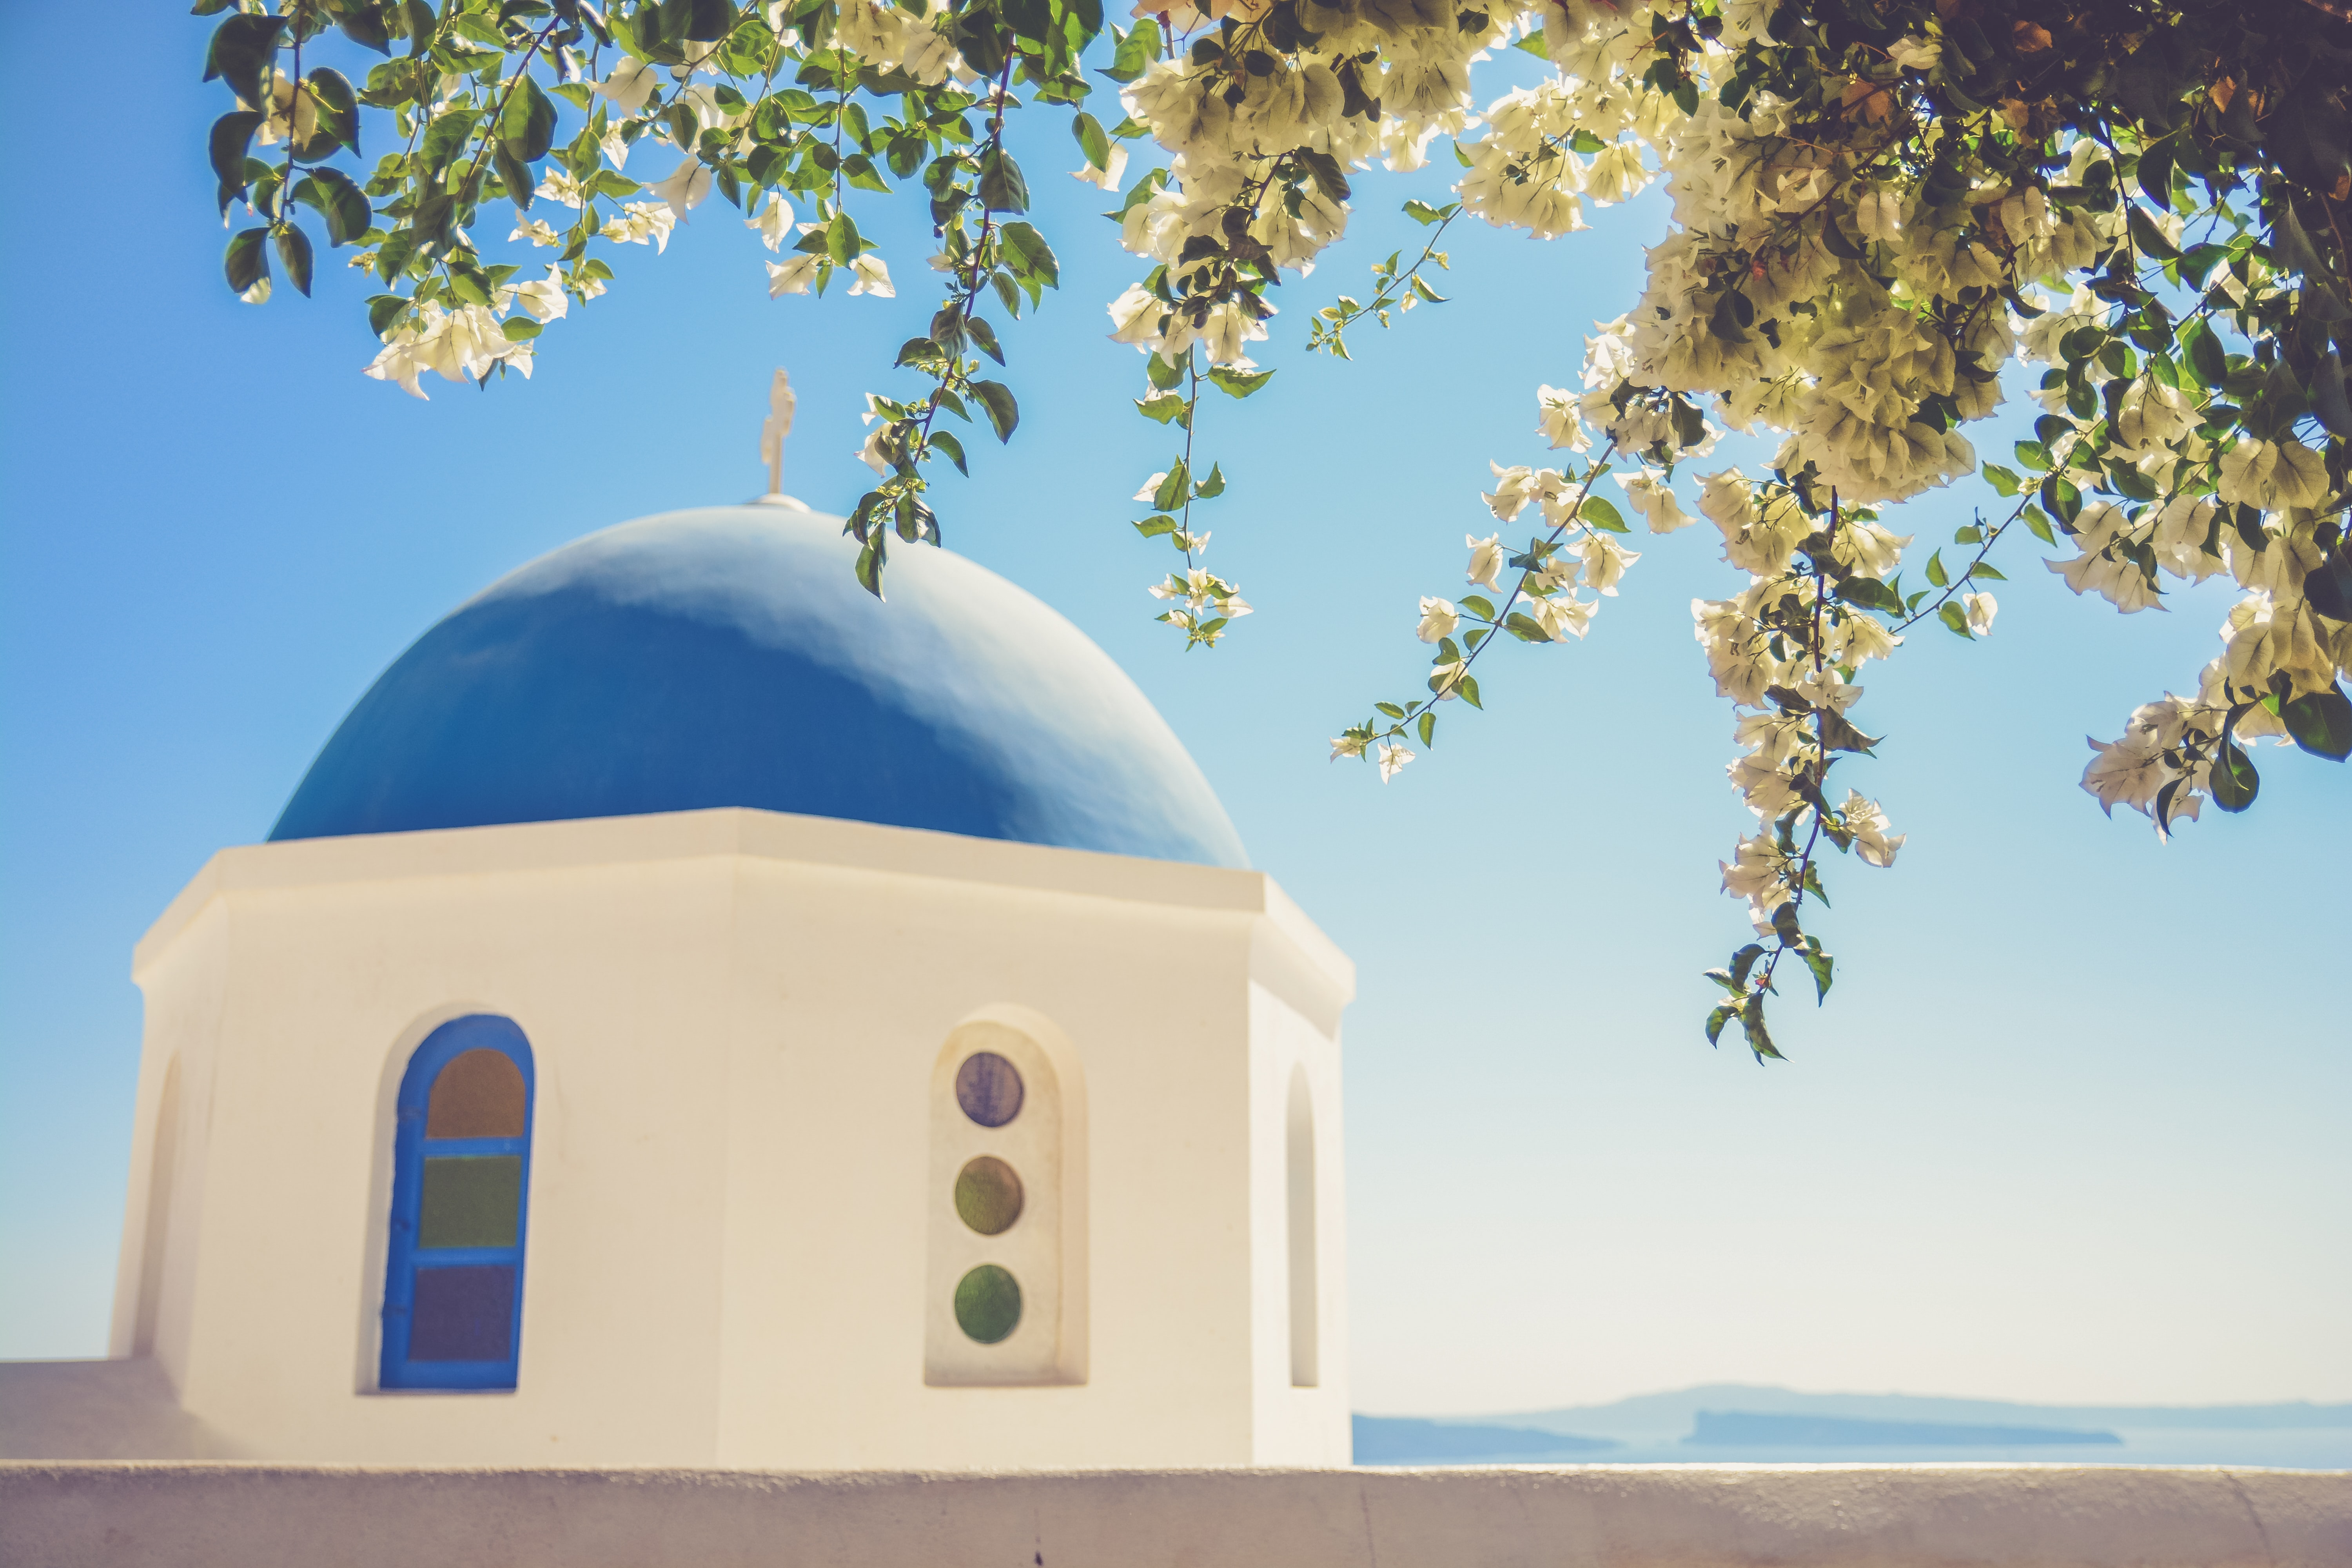 A blue dome on a Mediterranean building near a flowering tree